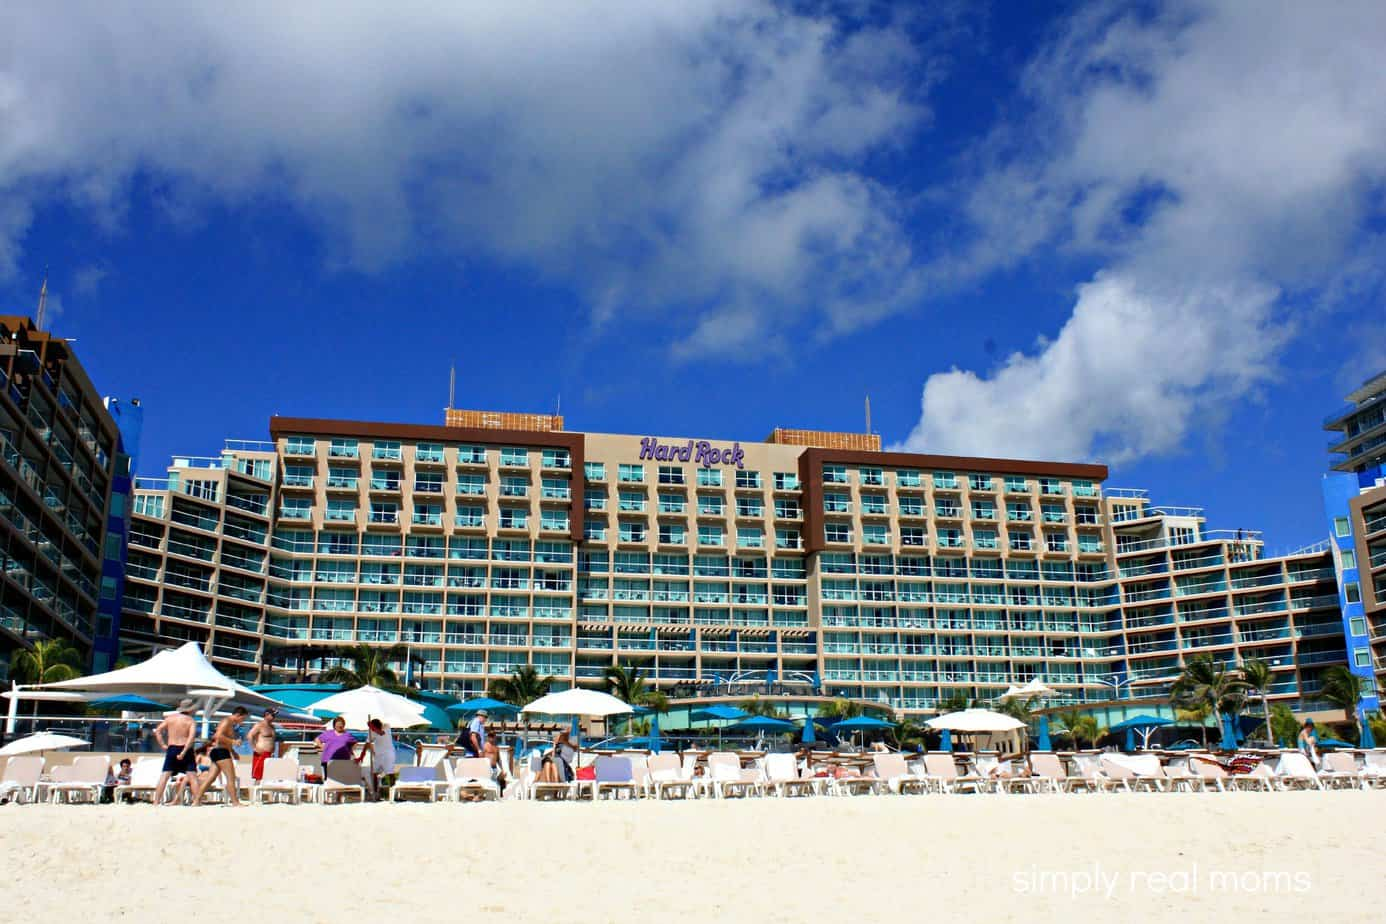 Hard Rock Hotel Cancun: All-Inclusive, Family-Friendly Resort 5